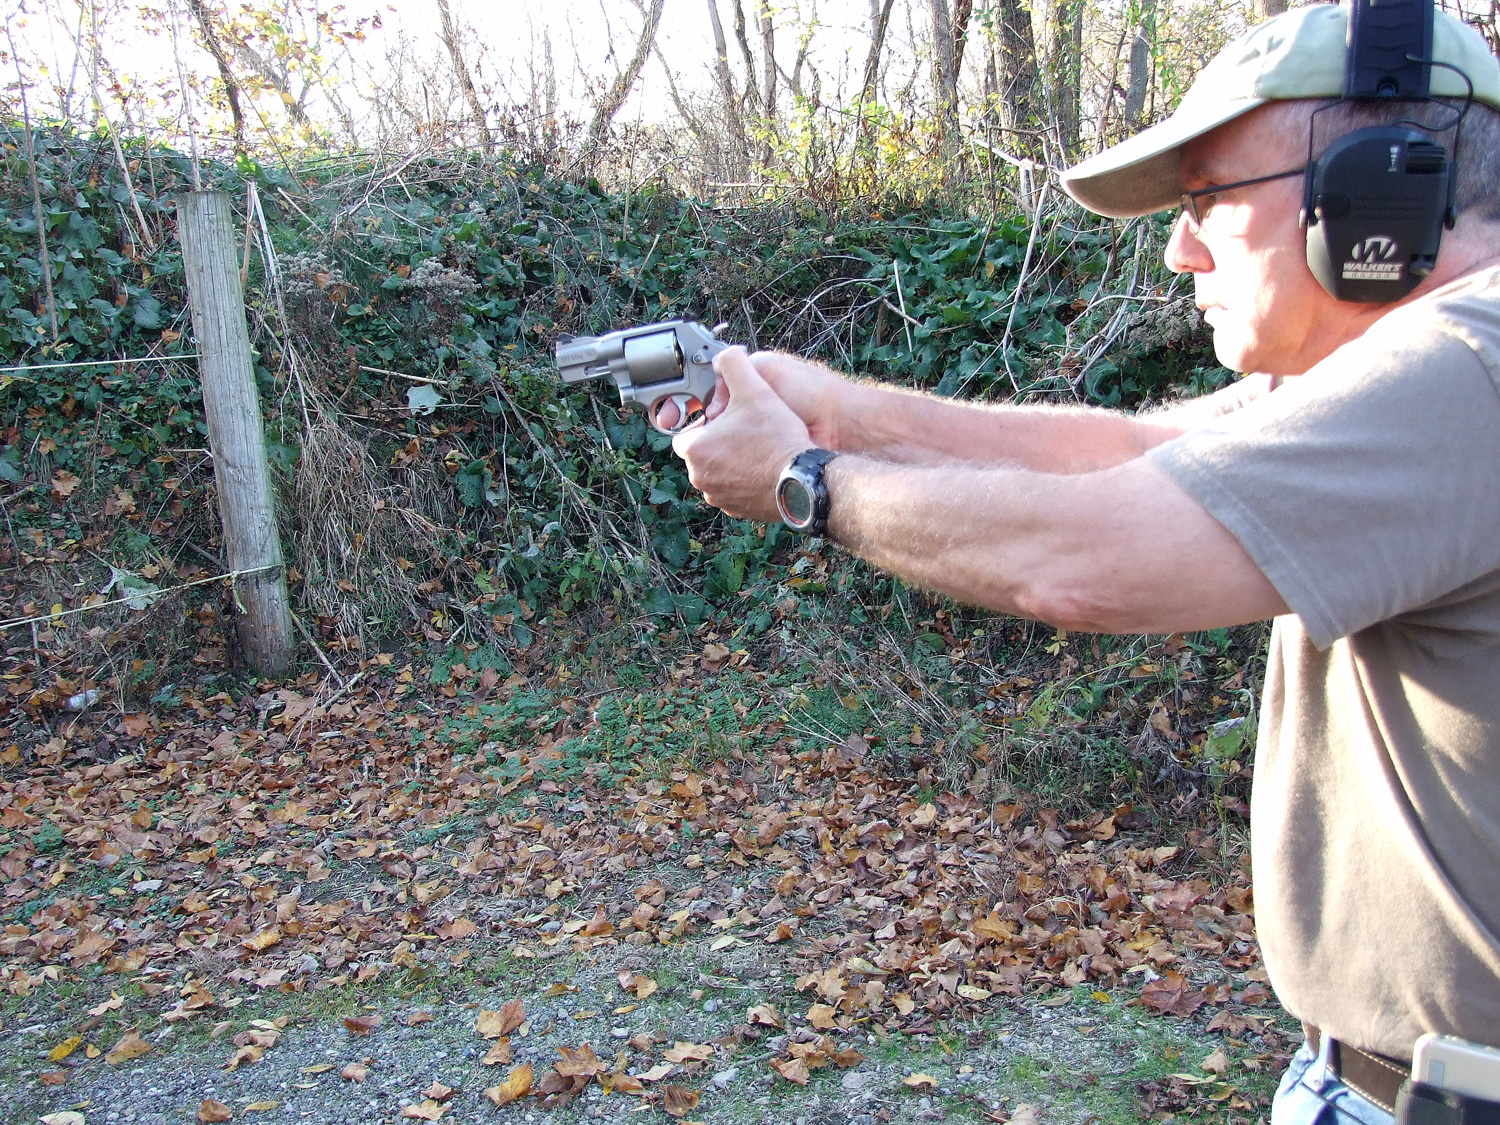 Scott Wagner shooting a revolver outdoors